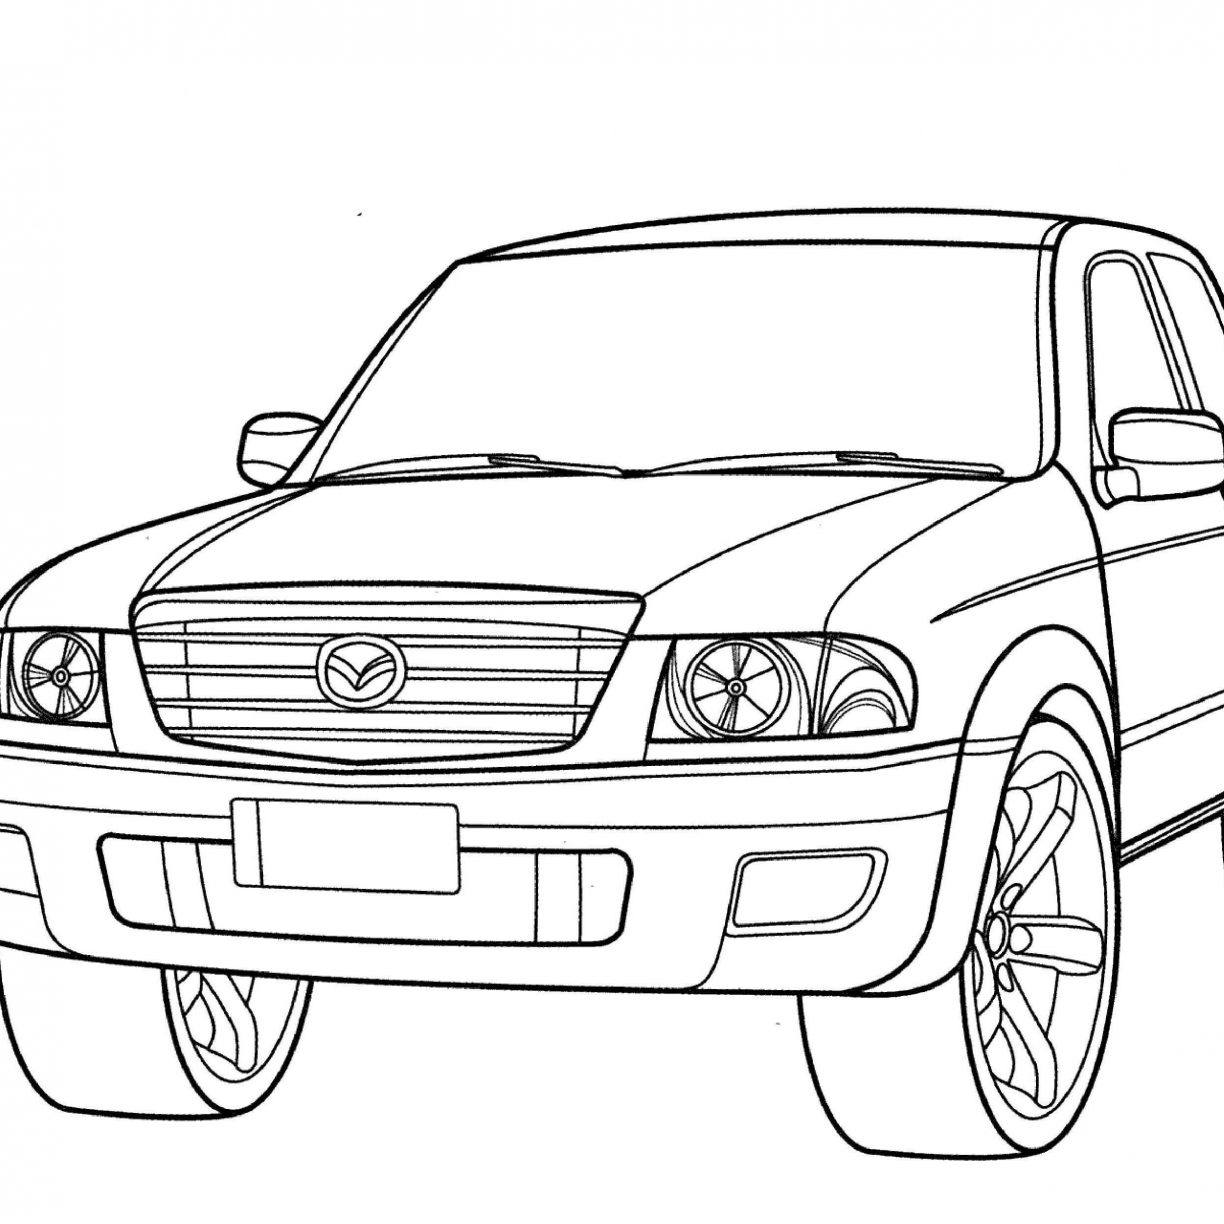 Chevy Truck Drawing At Getdrawings